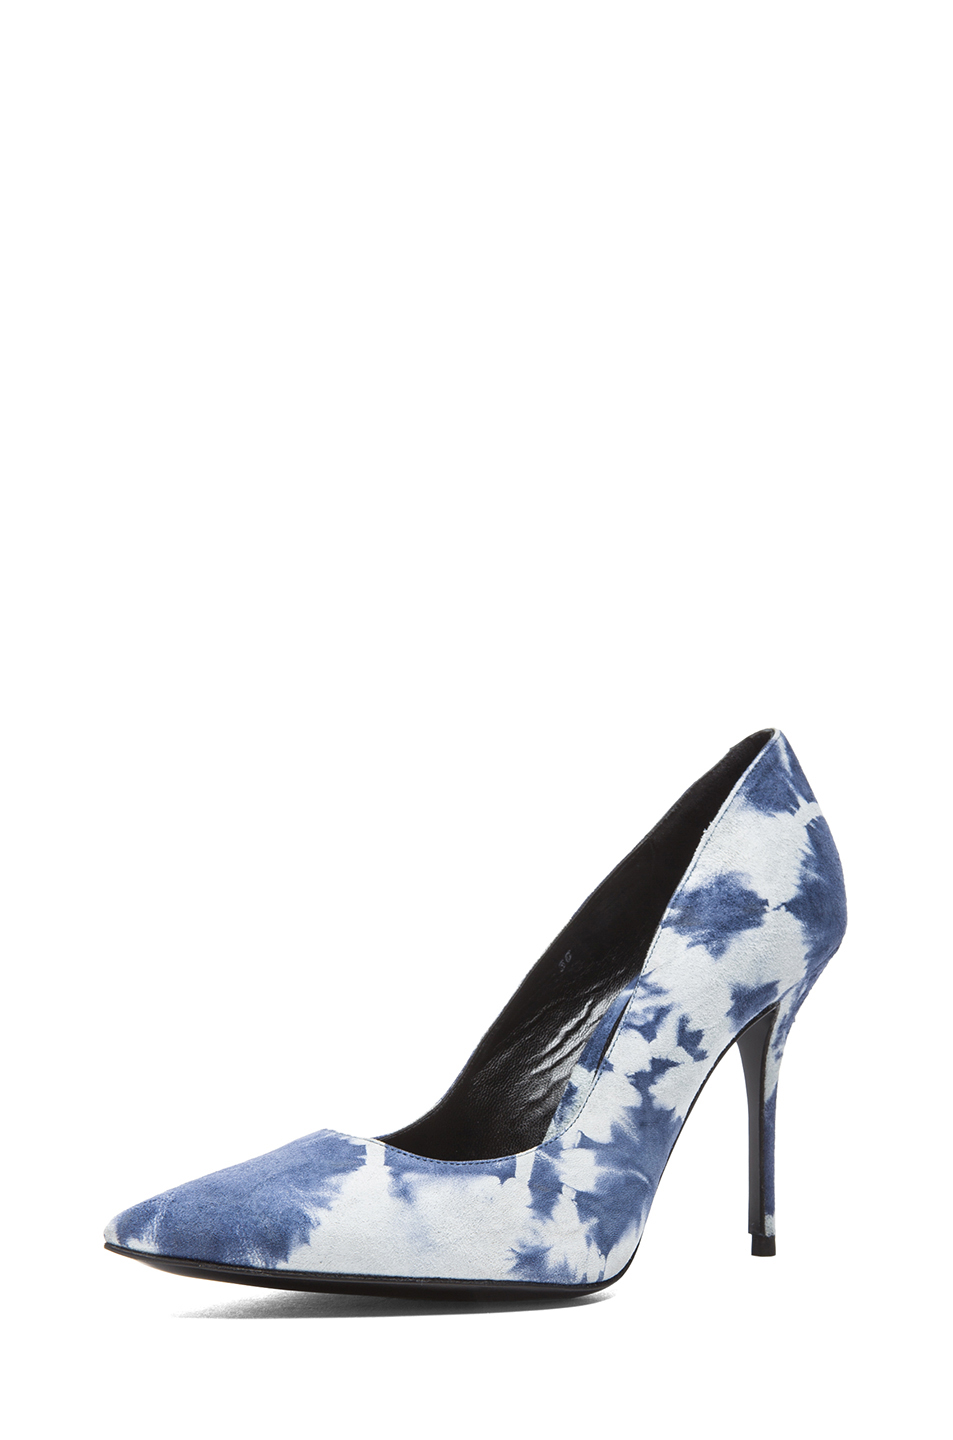 elysewalker los angeles | Sable Tie Dye Satik Suede Pumps in Denim & White